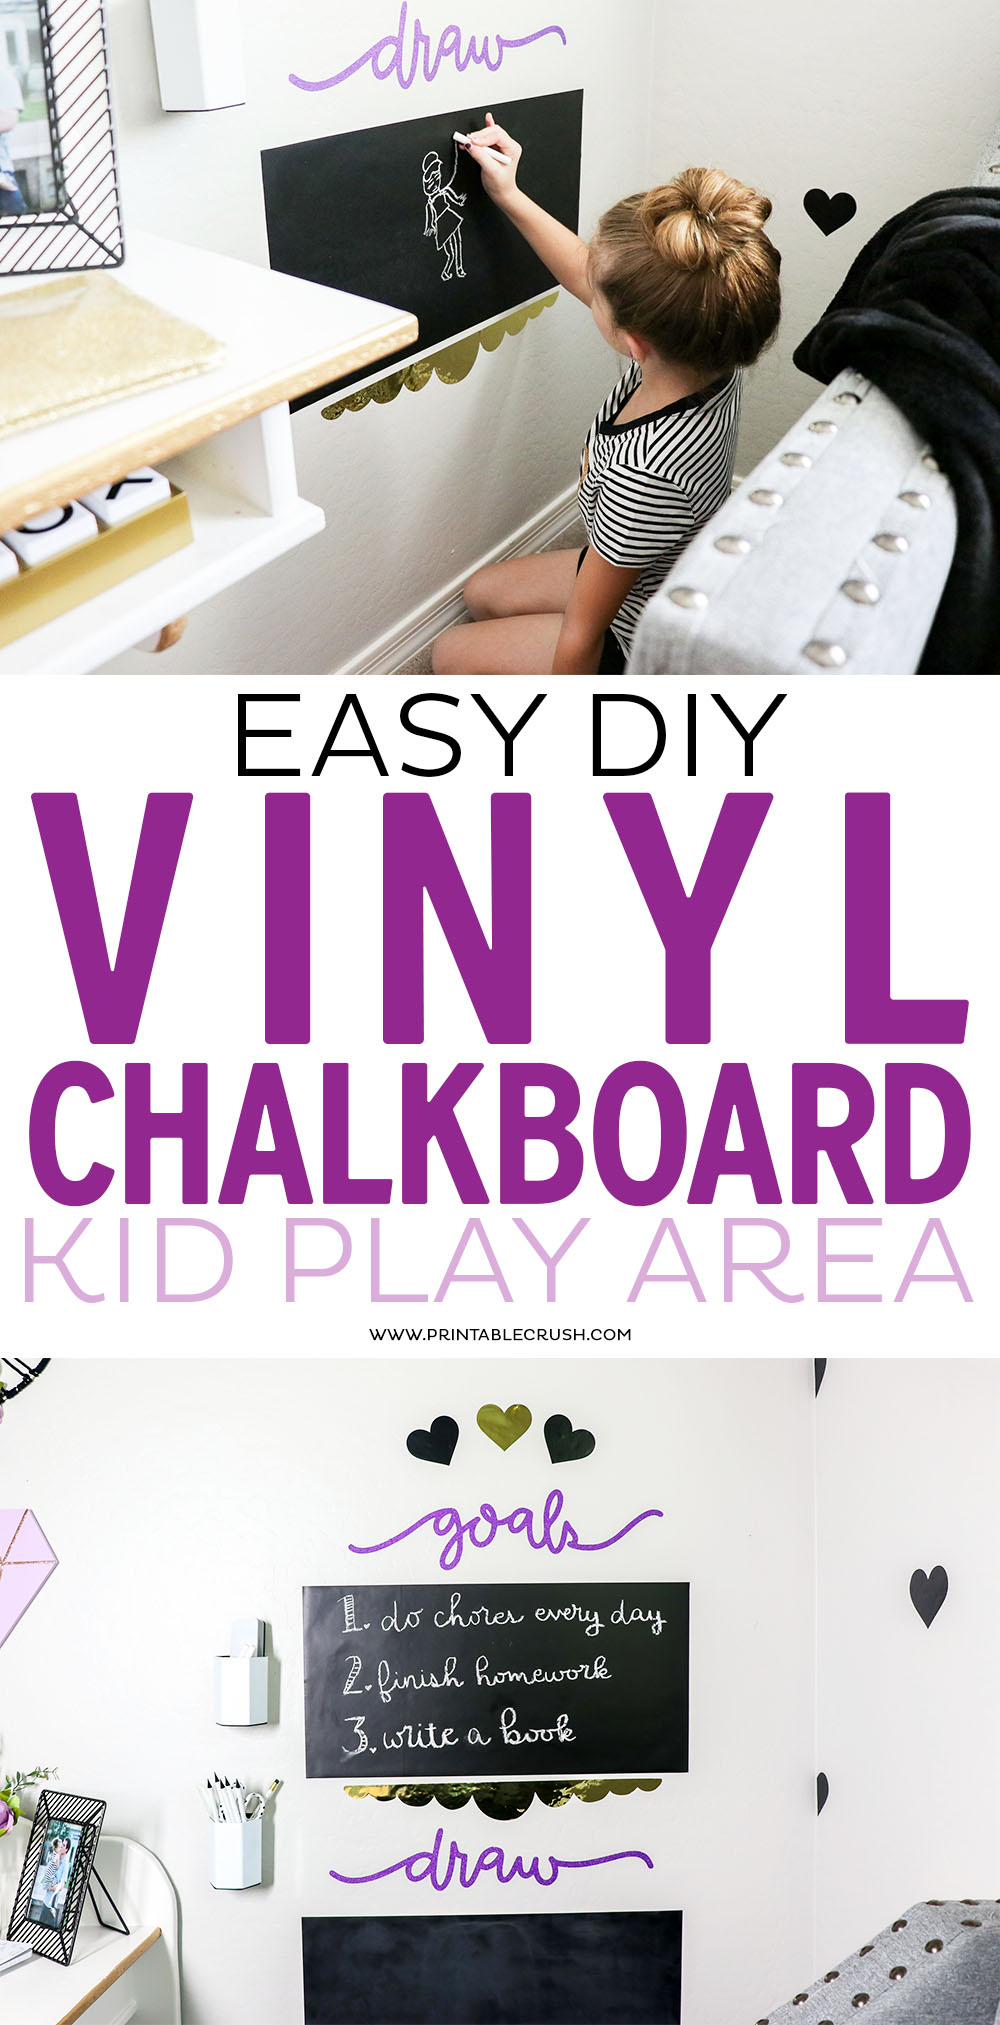 This DIY Vinyl Chalkboard Kid Play Area is easy to create and an inexpensive way to decorate a kid room!